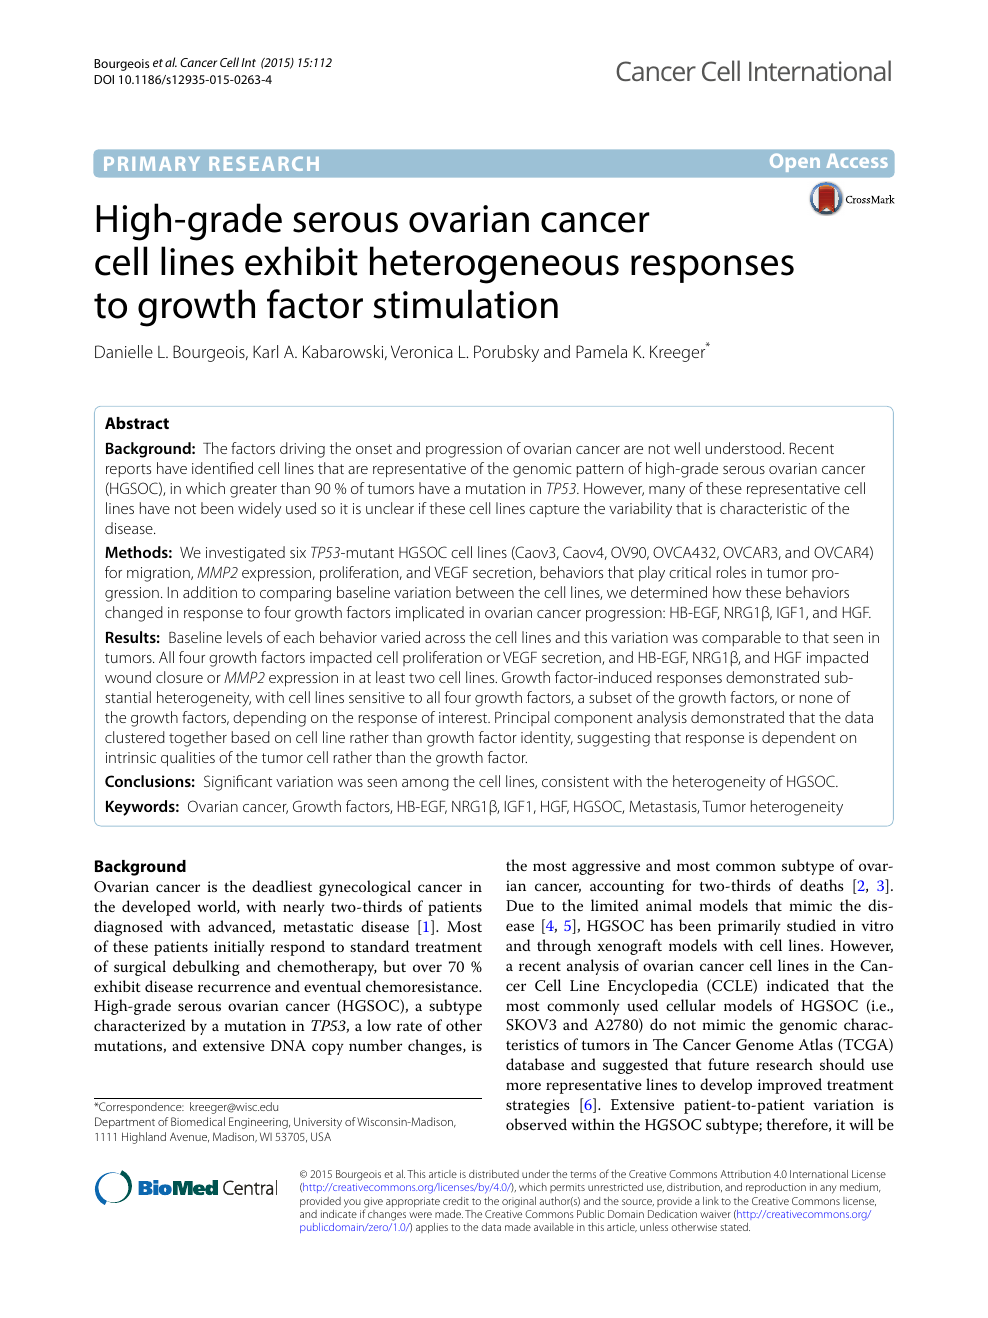 High Grade Serous Ovarian Cancer Cell Lines Exhibit Heterogeneous Responses To Growth Factor Stimulation Topic Of Research Paper In Biological Sciences Download Scholarly Article Pdf And Read For Free On Cyberleninka Open